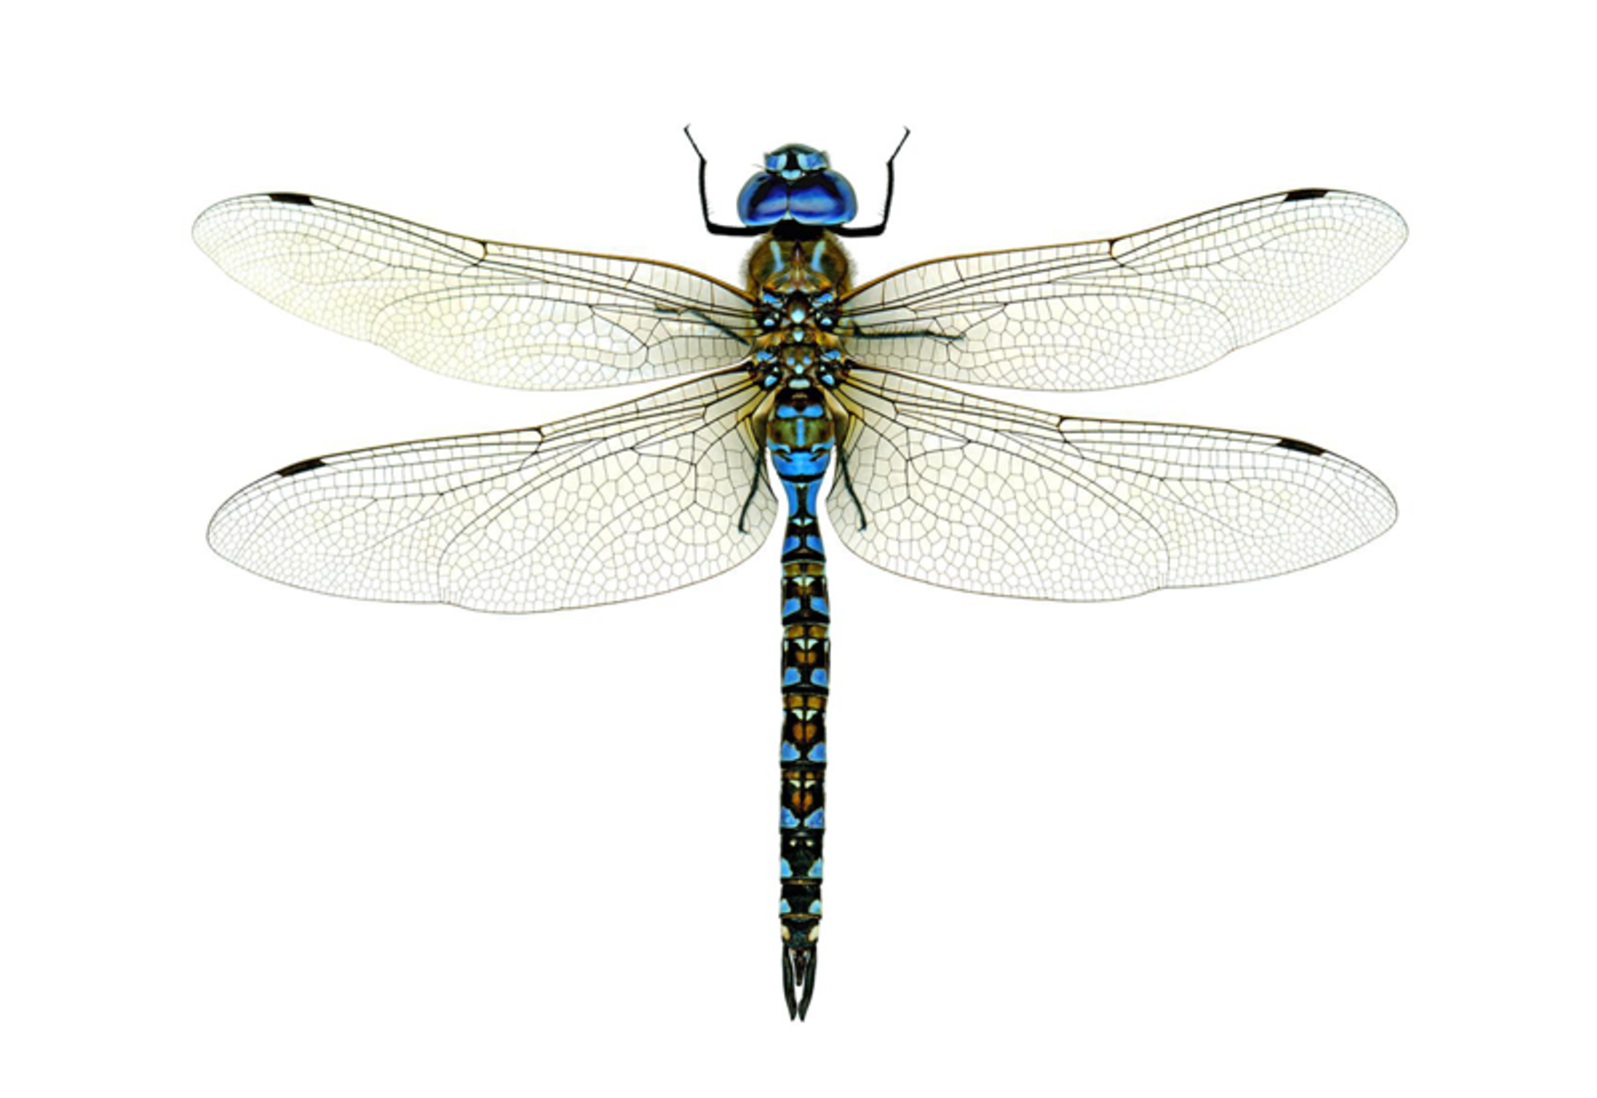 Chasing Dragonflies And Damselflies | Audubon - Dragonfly, Transparent background PNG HD thumbnail